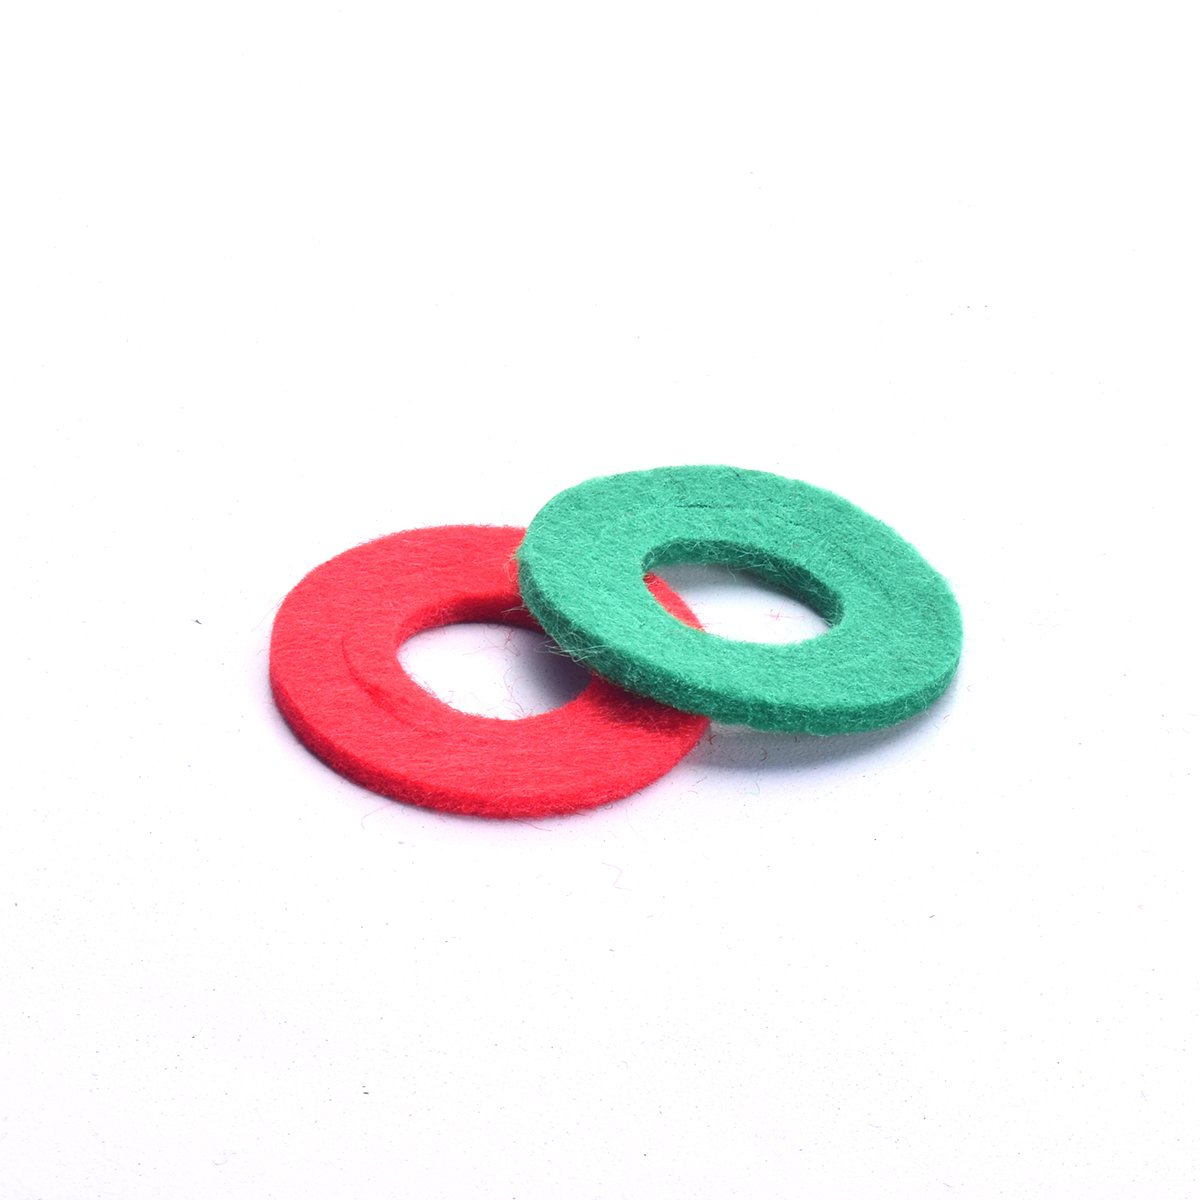 EKYLIN Car Battery Anti-Corrosion Fiber Washers Acid Chemical Corrosion Terminal Protectors for Battery Cable Connecting Spot(Pack of 2)